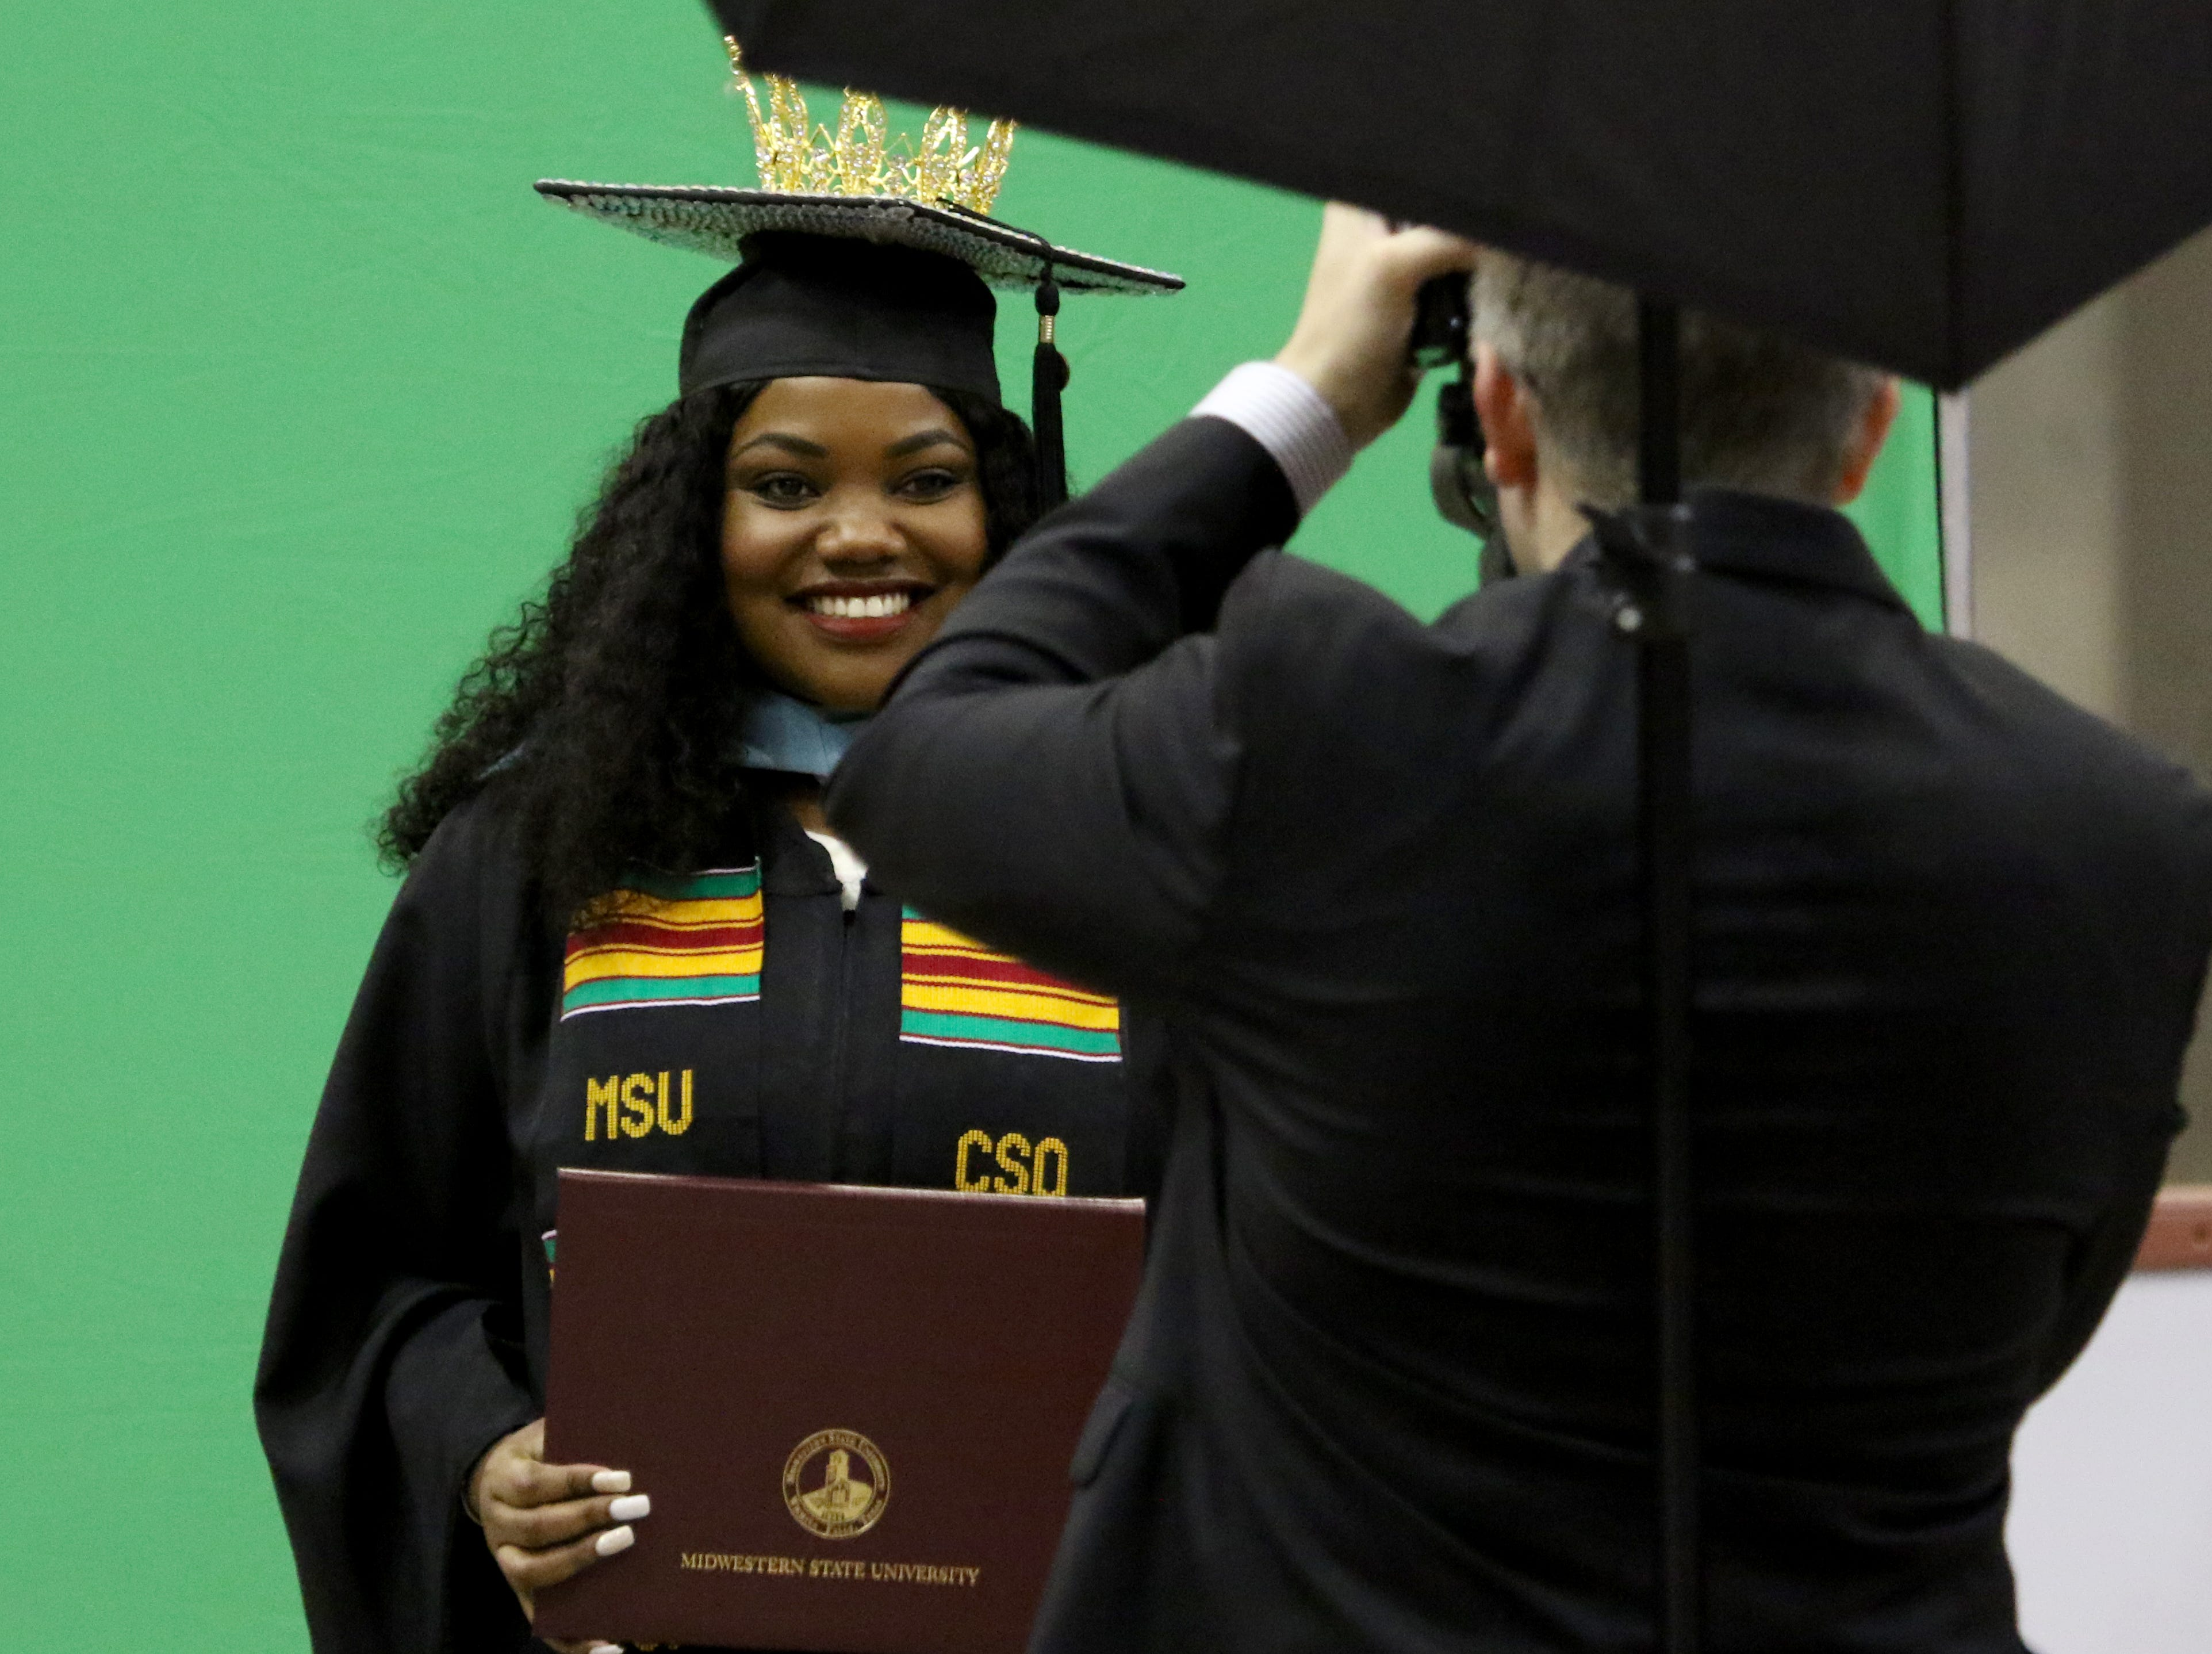 Graduates have their photo taken after walking across the stage at Midwestern State University's Spring Commencement Saturday, May 11, 2019, in Kay Yeager Coliseum.